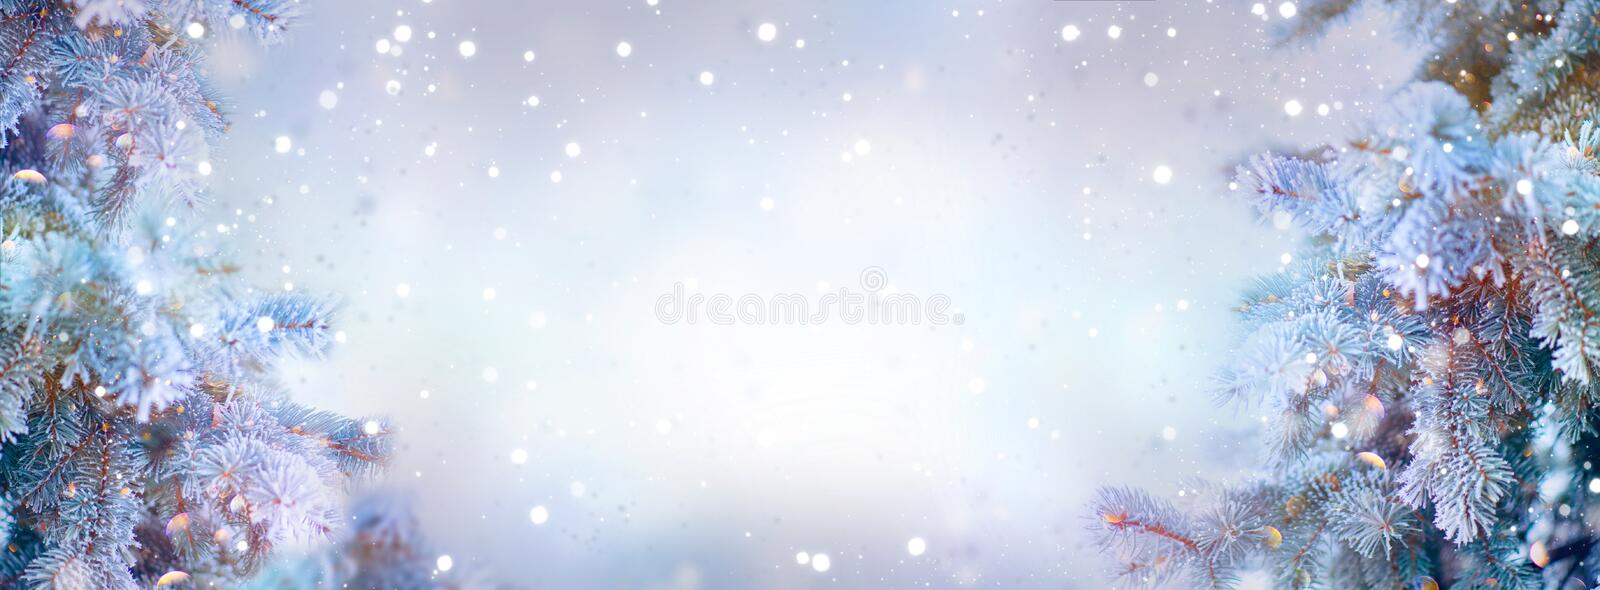 Christmas holiday trees. Border snow background. Snowflakes. Blue spruce, beautiful Christmas and New Year Xmas trees art design. Abstract blue widescreen royalty free stock photo